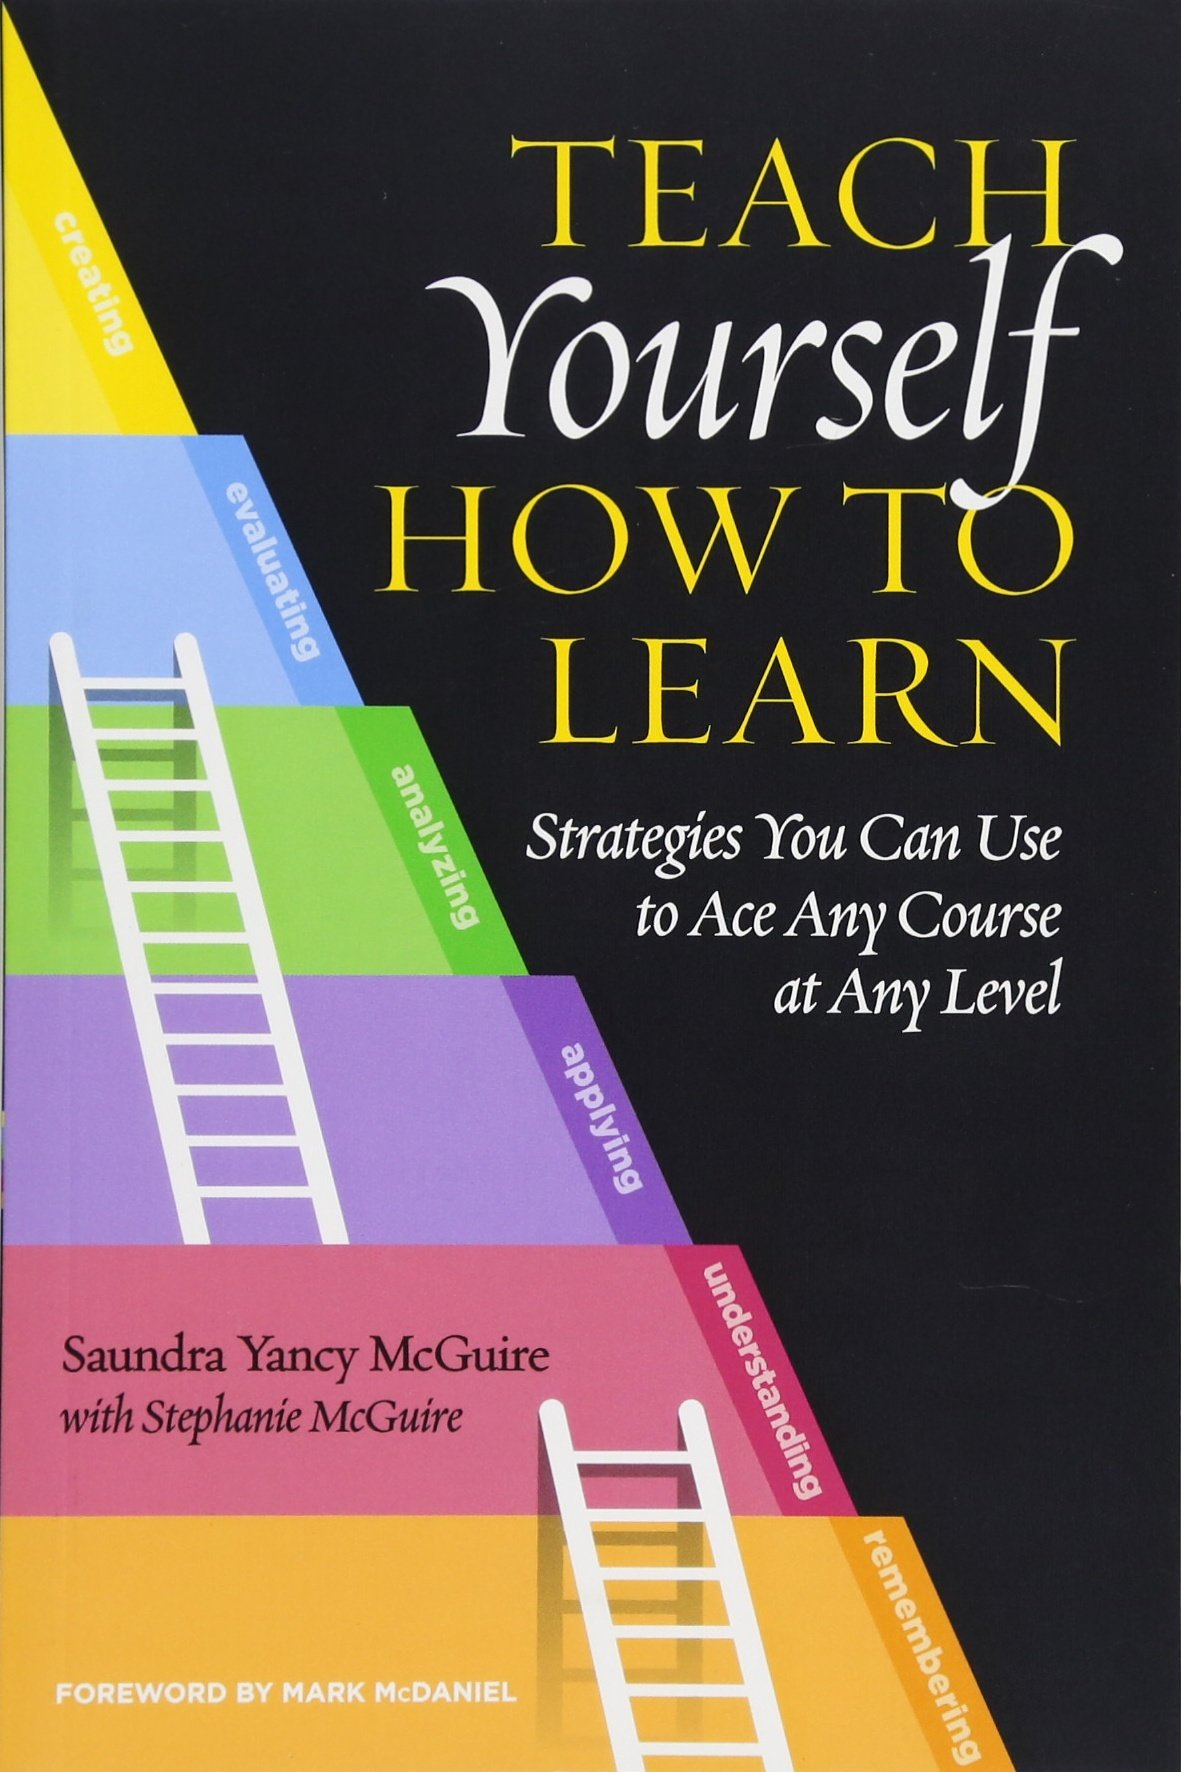 Teach Yourself How Learn Strategies product image